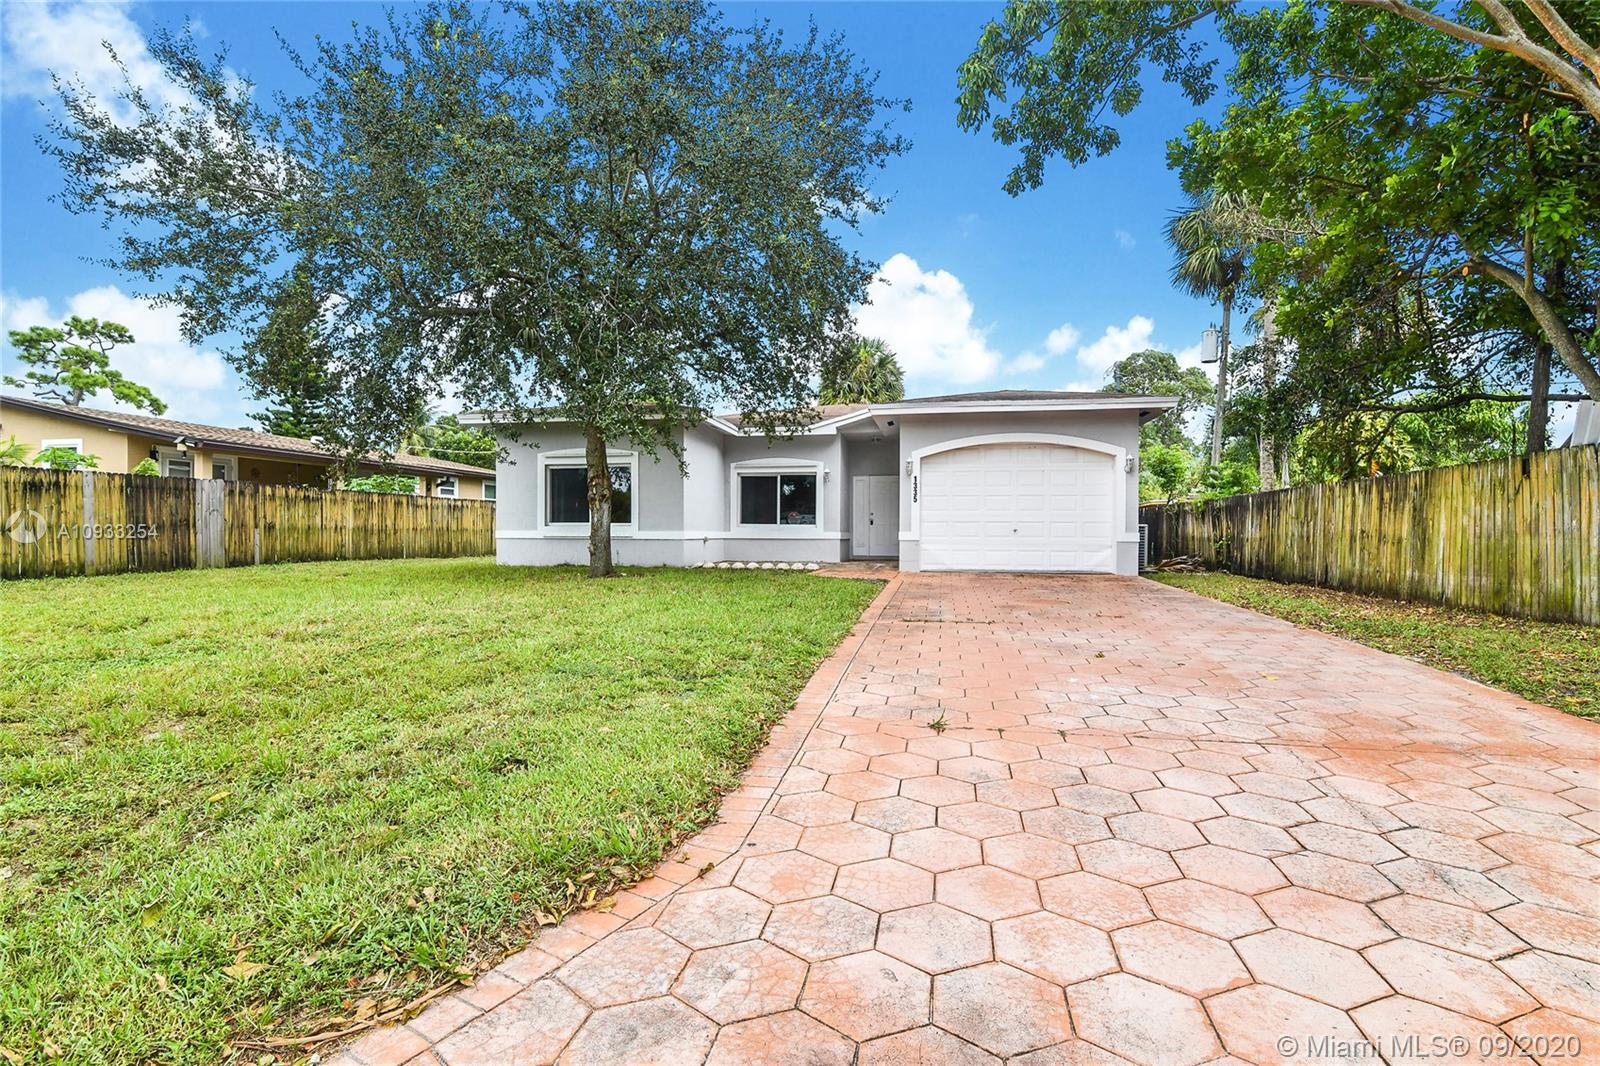 1335 SW 26th Ave, Fort Lauderdale, Florida 33312